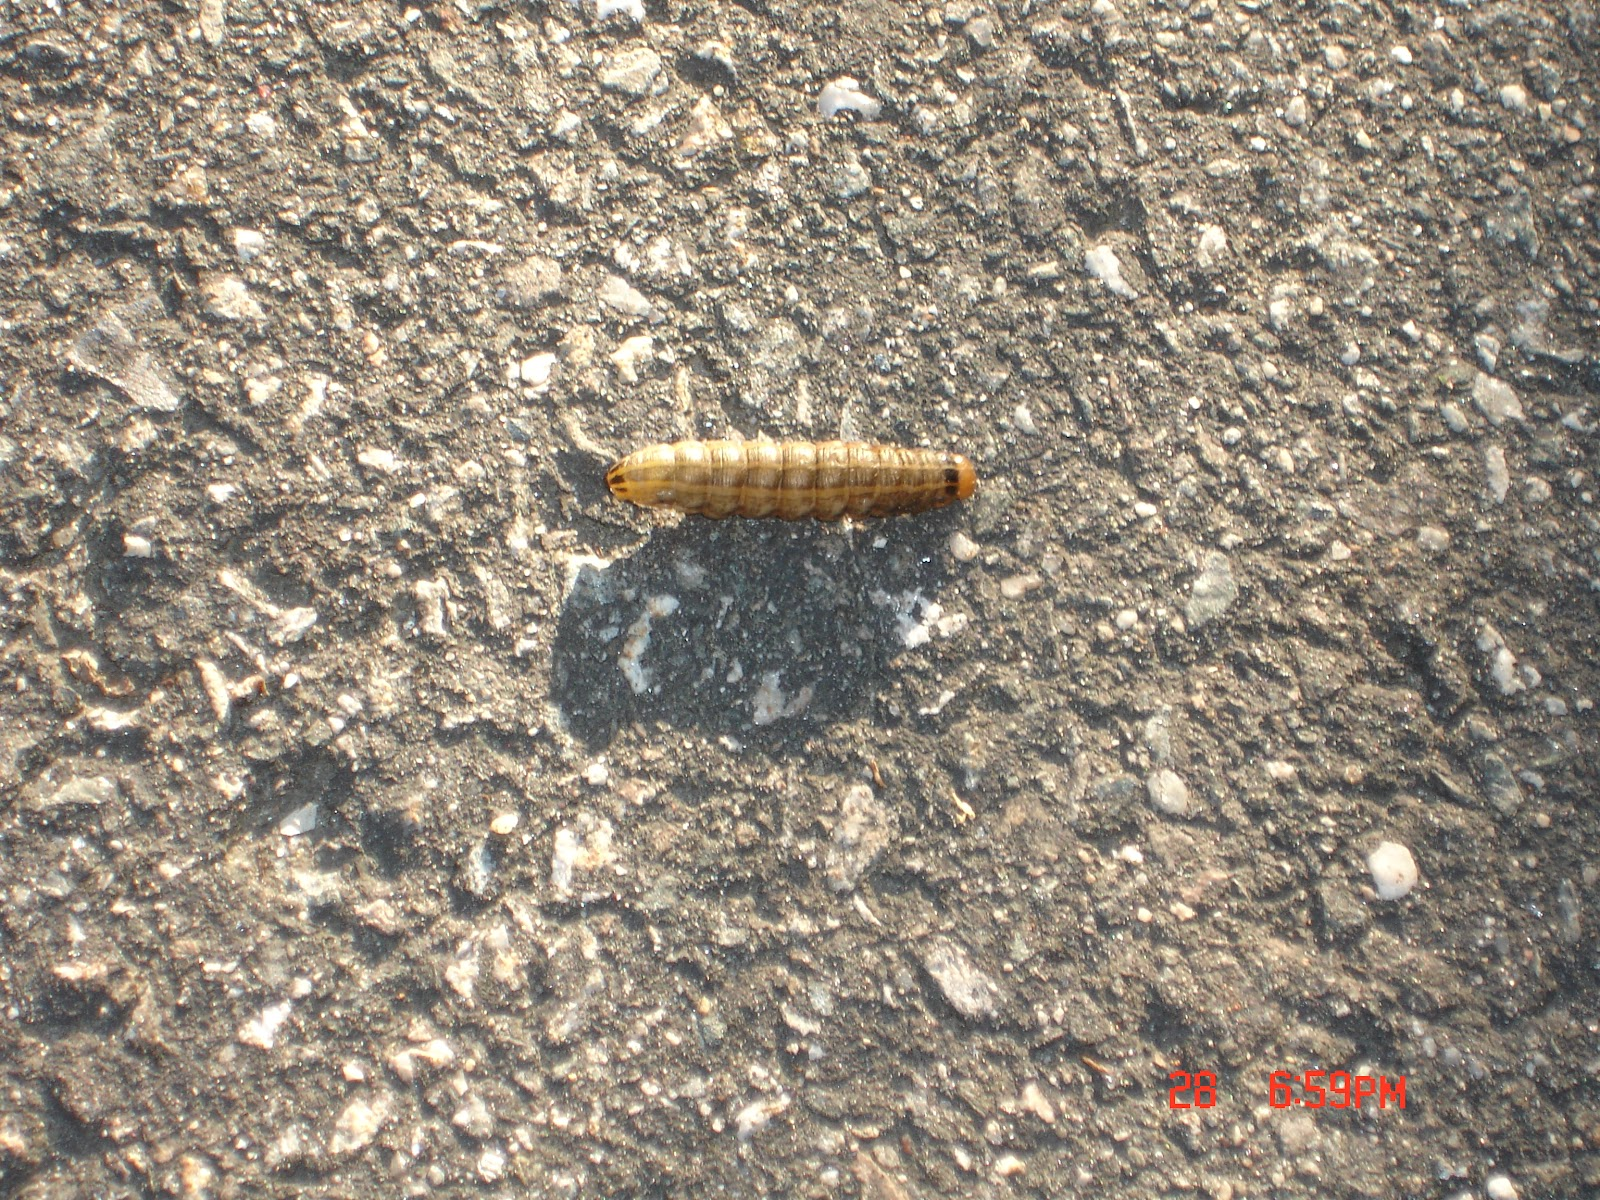 Caterpillars and Pupa Archives - Page 8 of 451 - Whats